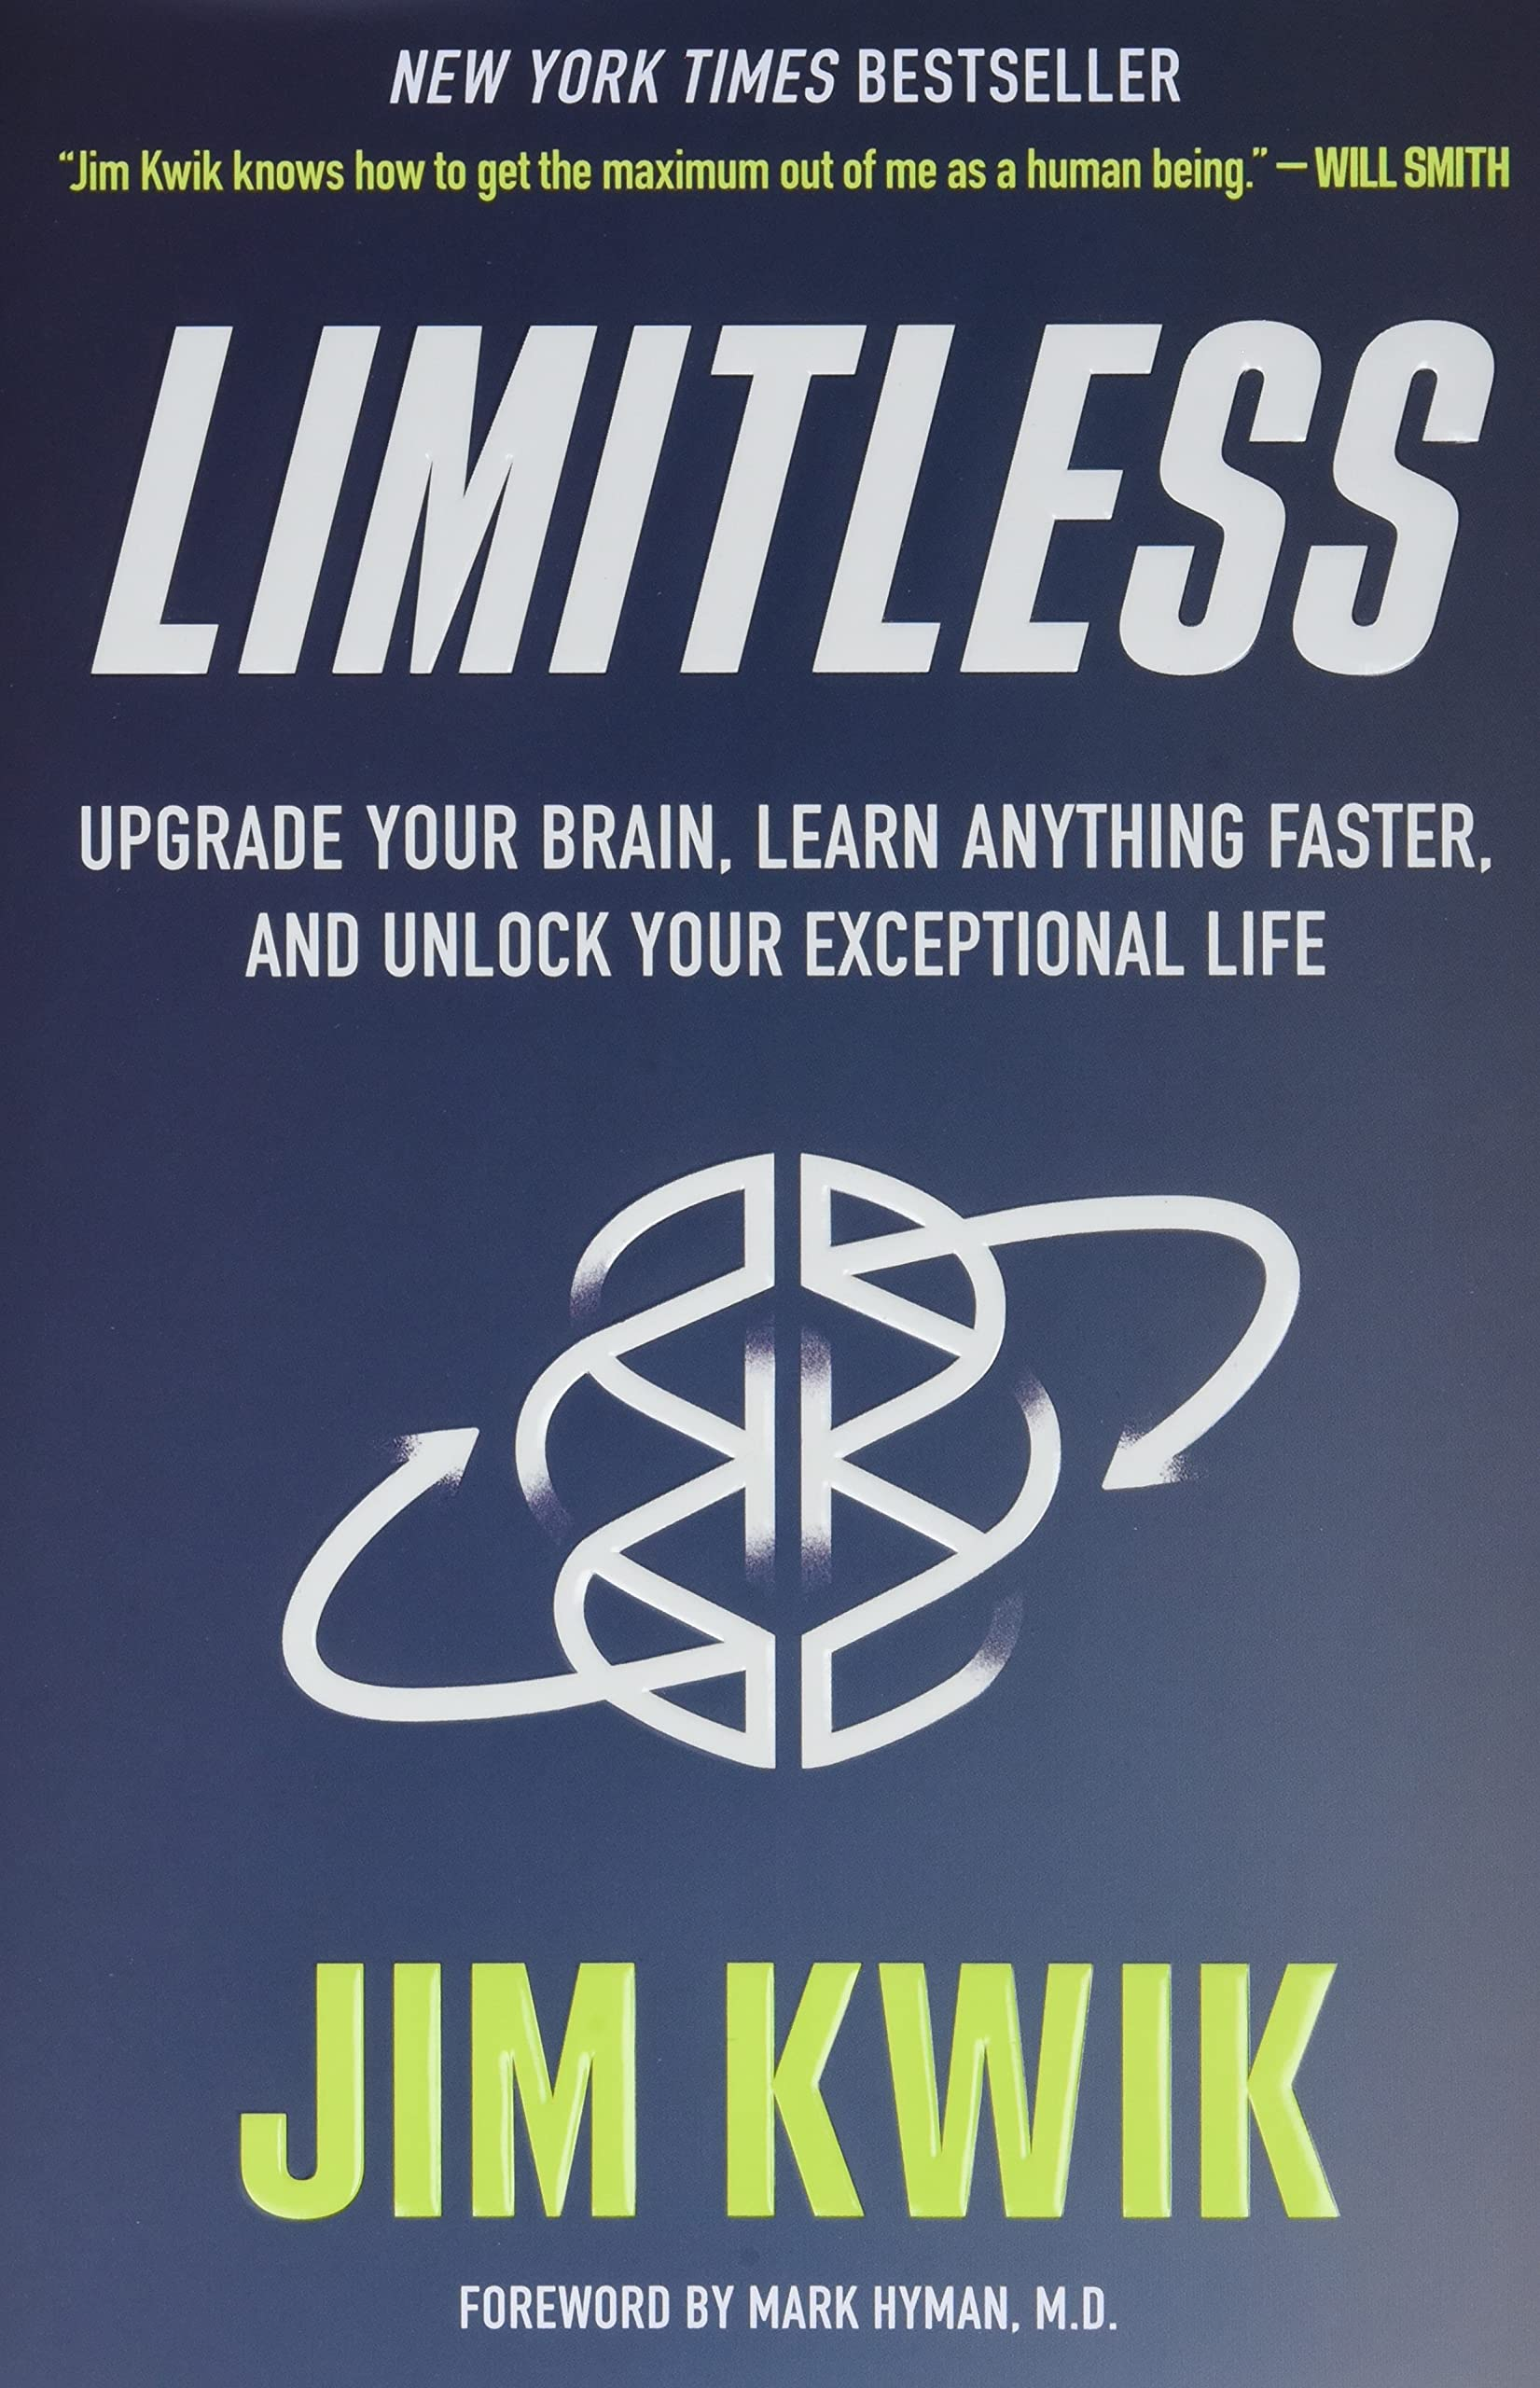 Limitless Upgrade Your Brain, Learn Anything Faster, and Unlock ...